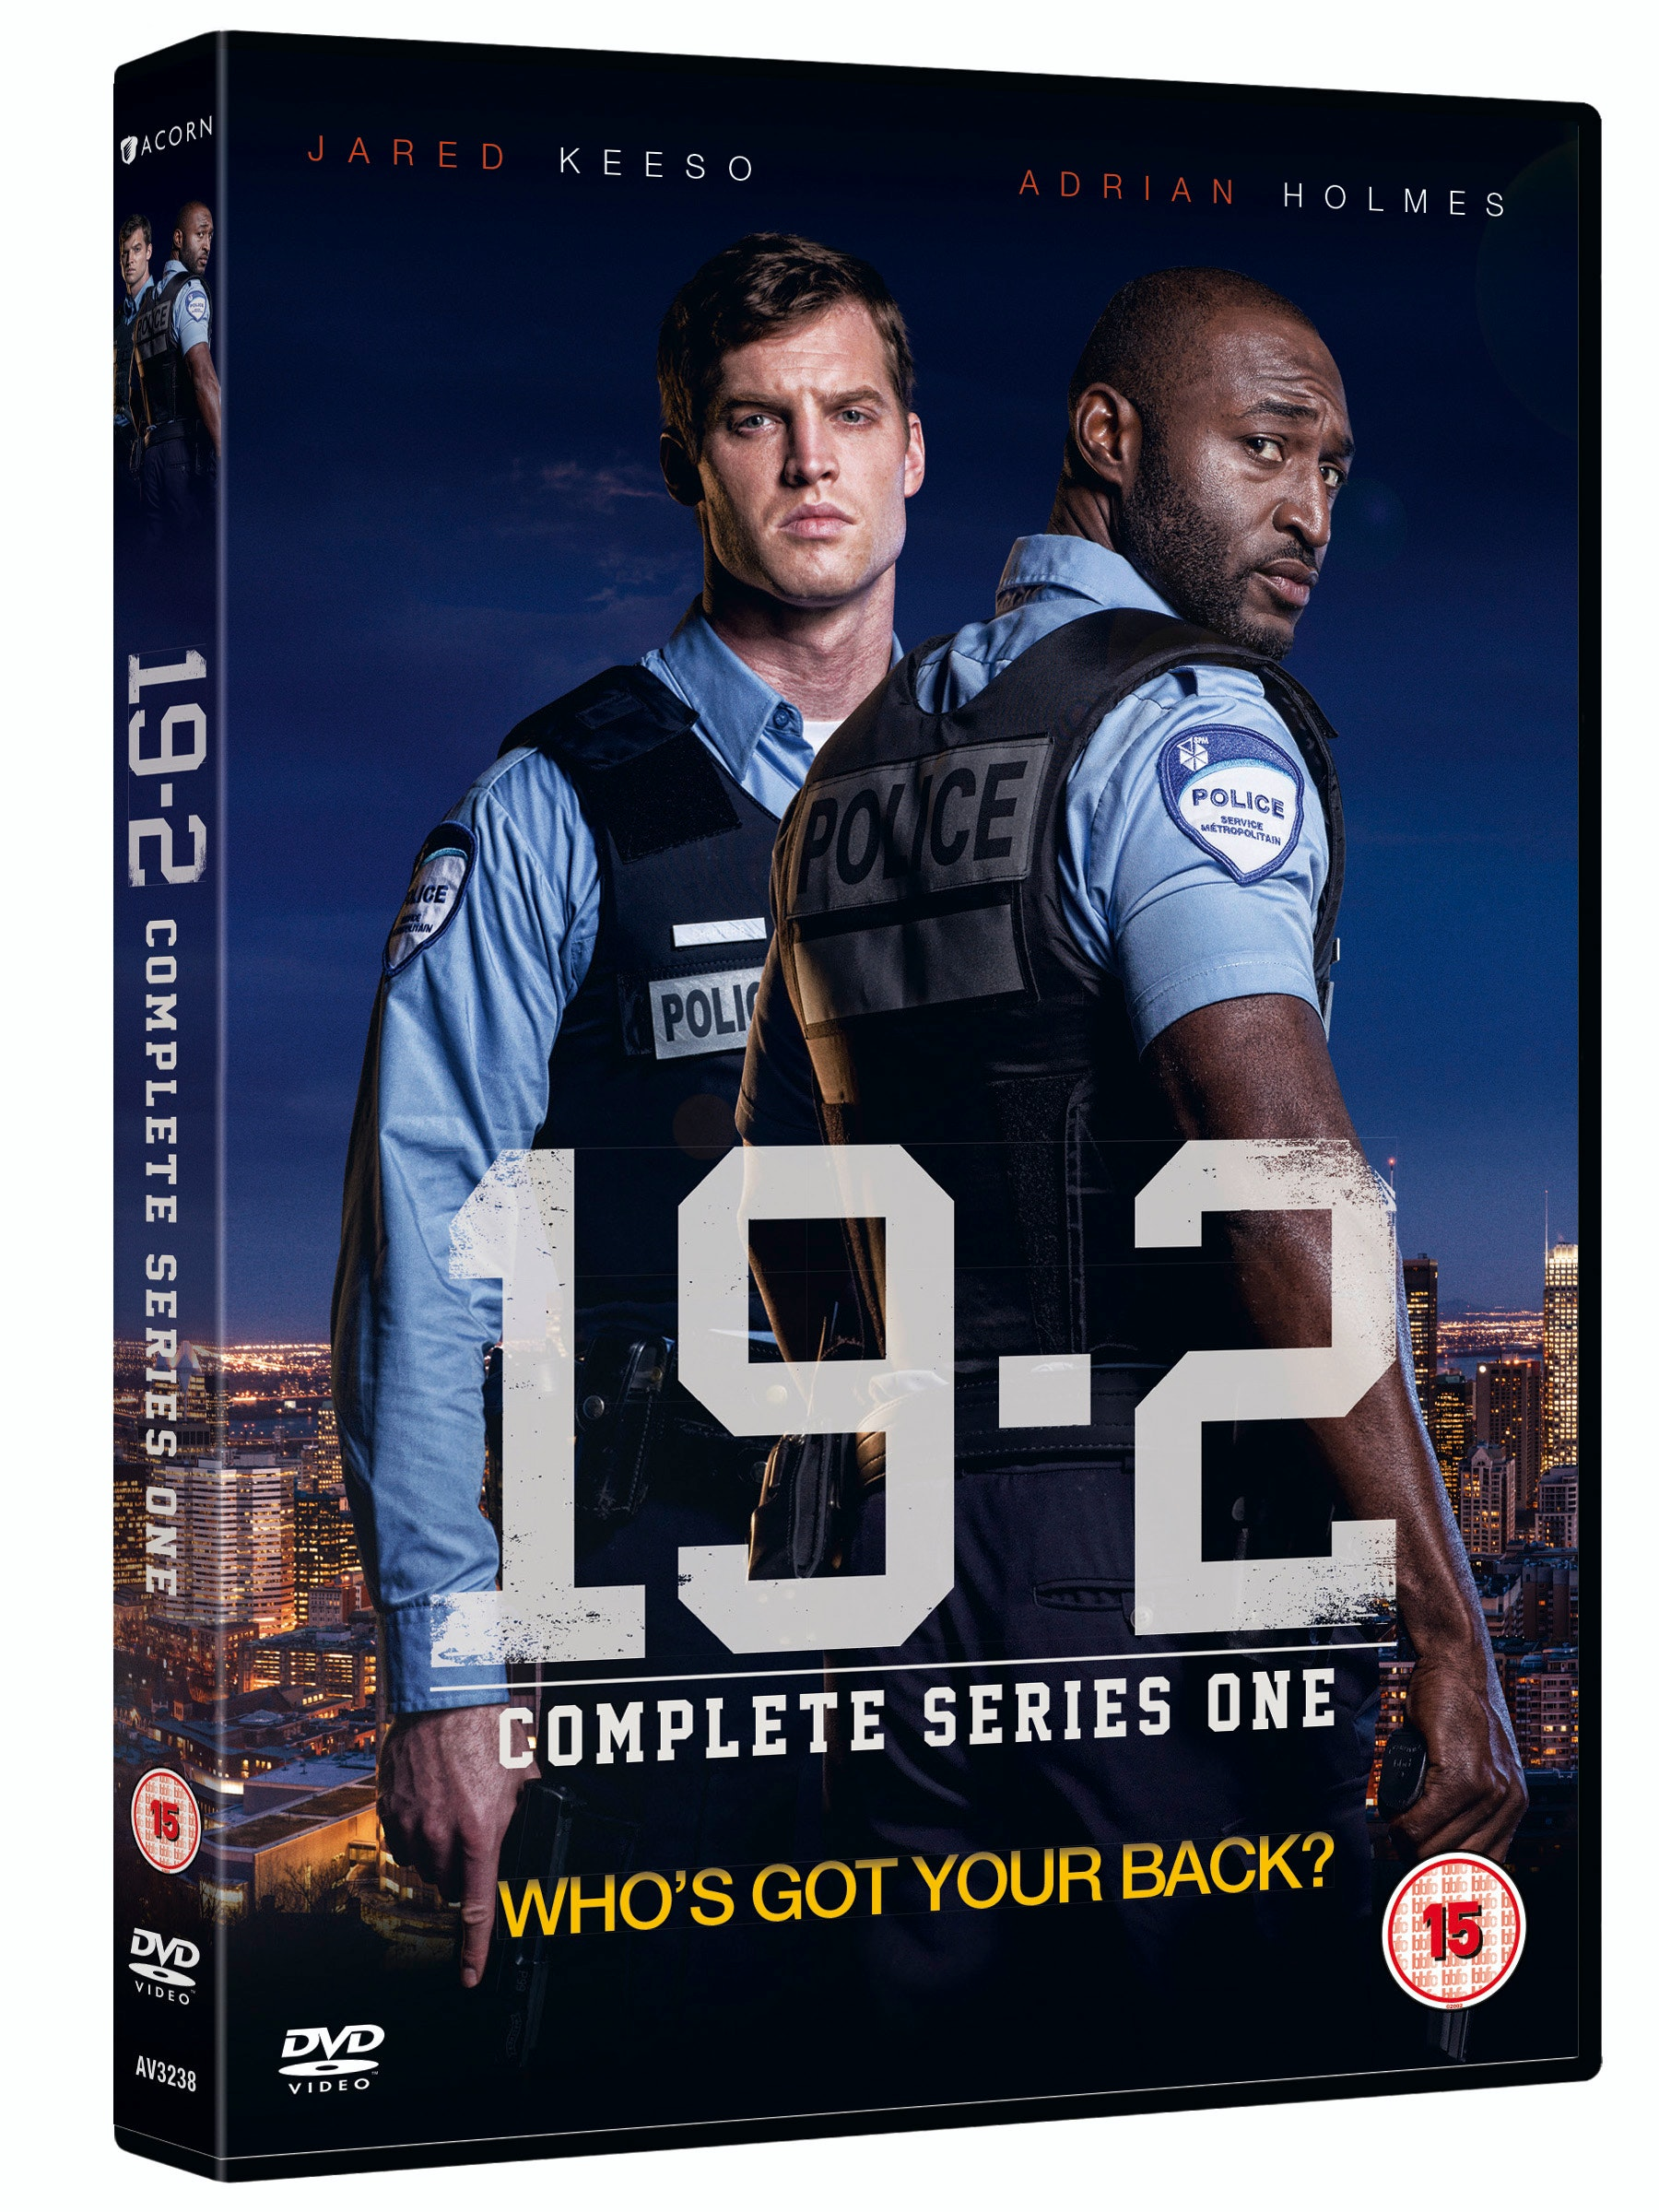 19-2 Complete Series One sweepstakes